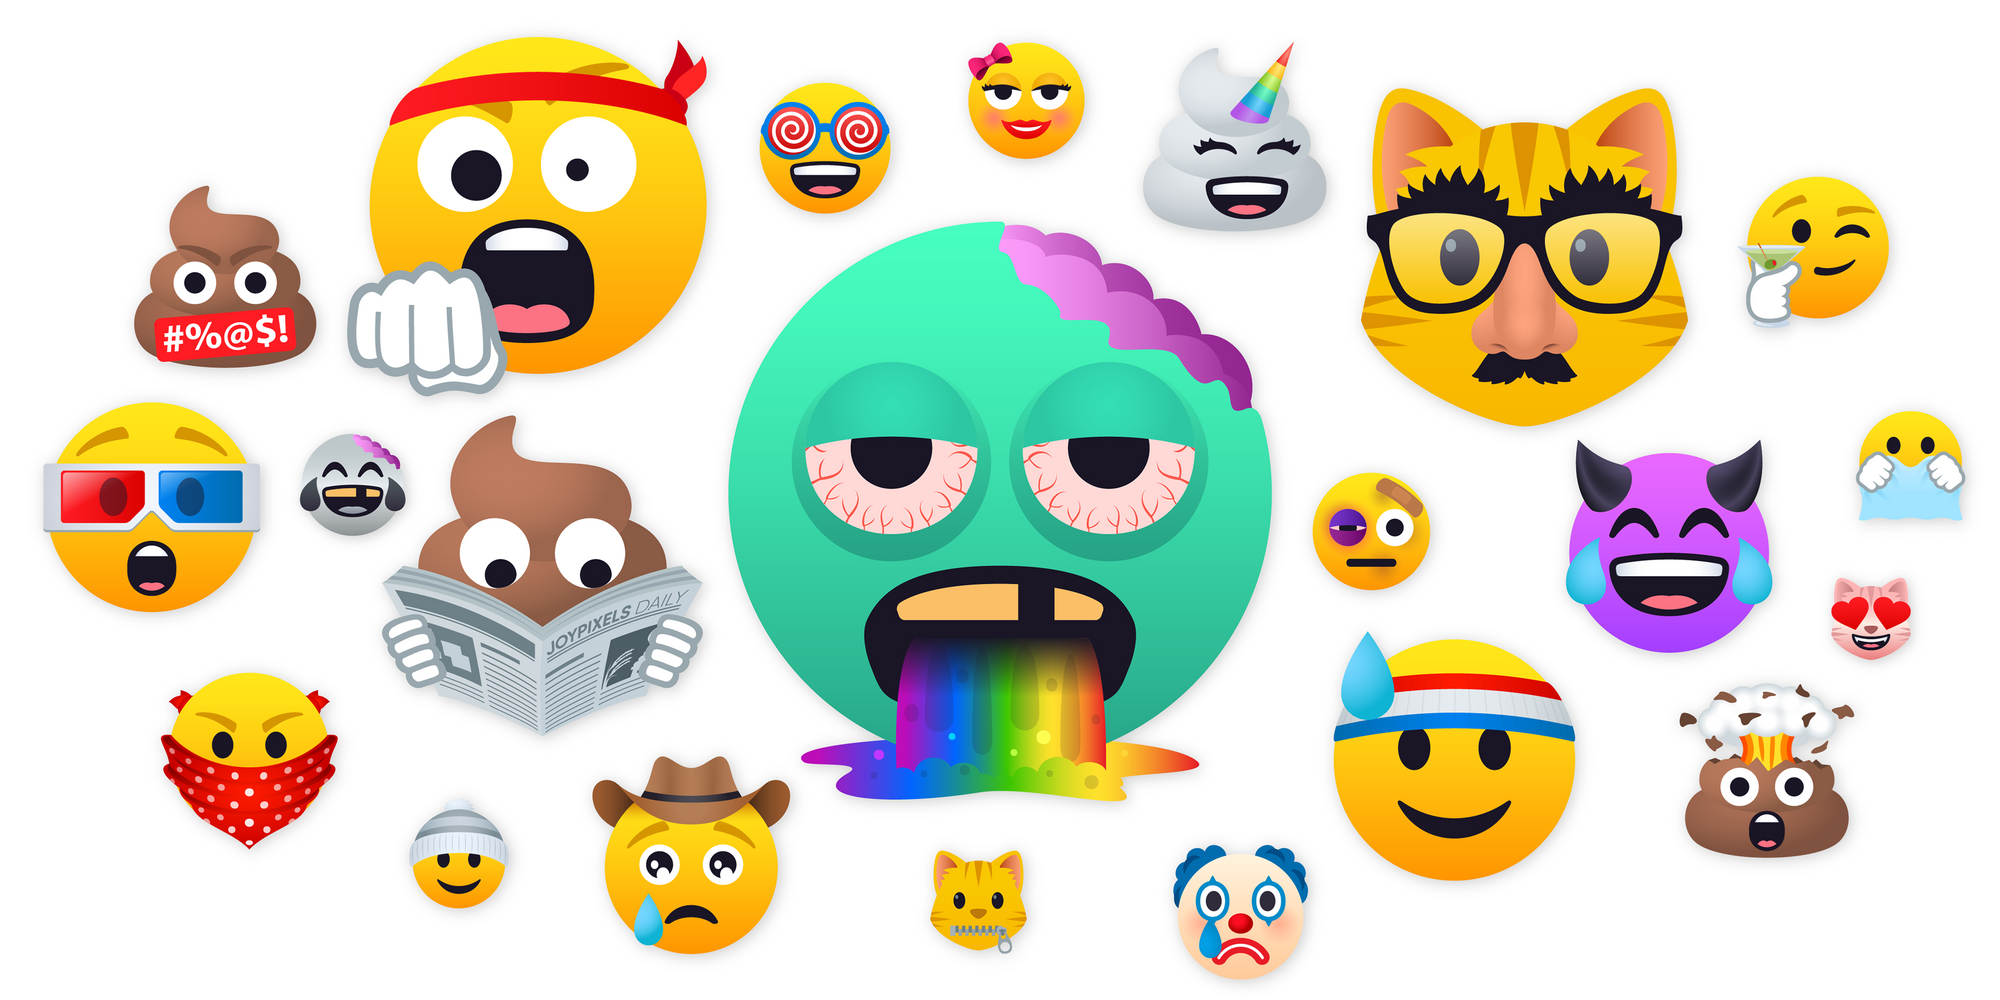 Joypixels Emoji As A Service Formerly Emojione